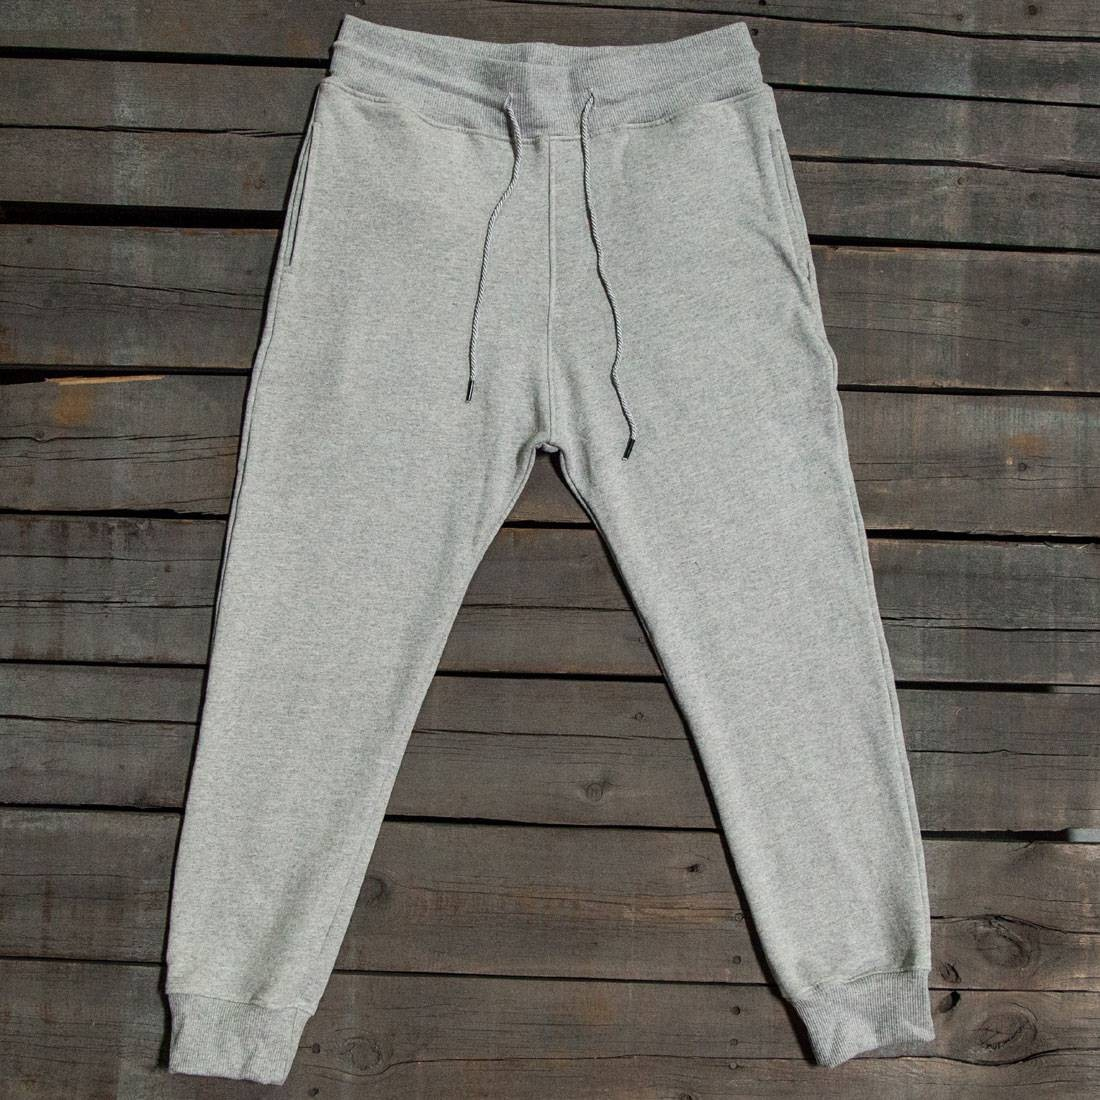 BAIT Men Premium Sweatpants - Made In Los Angeles (gray / heather)